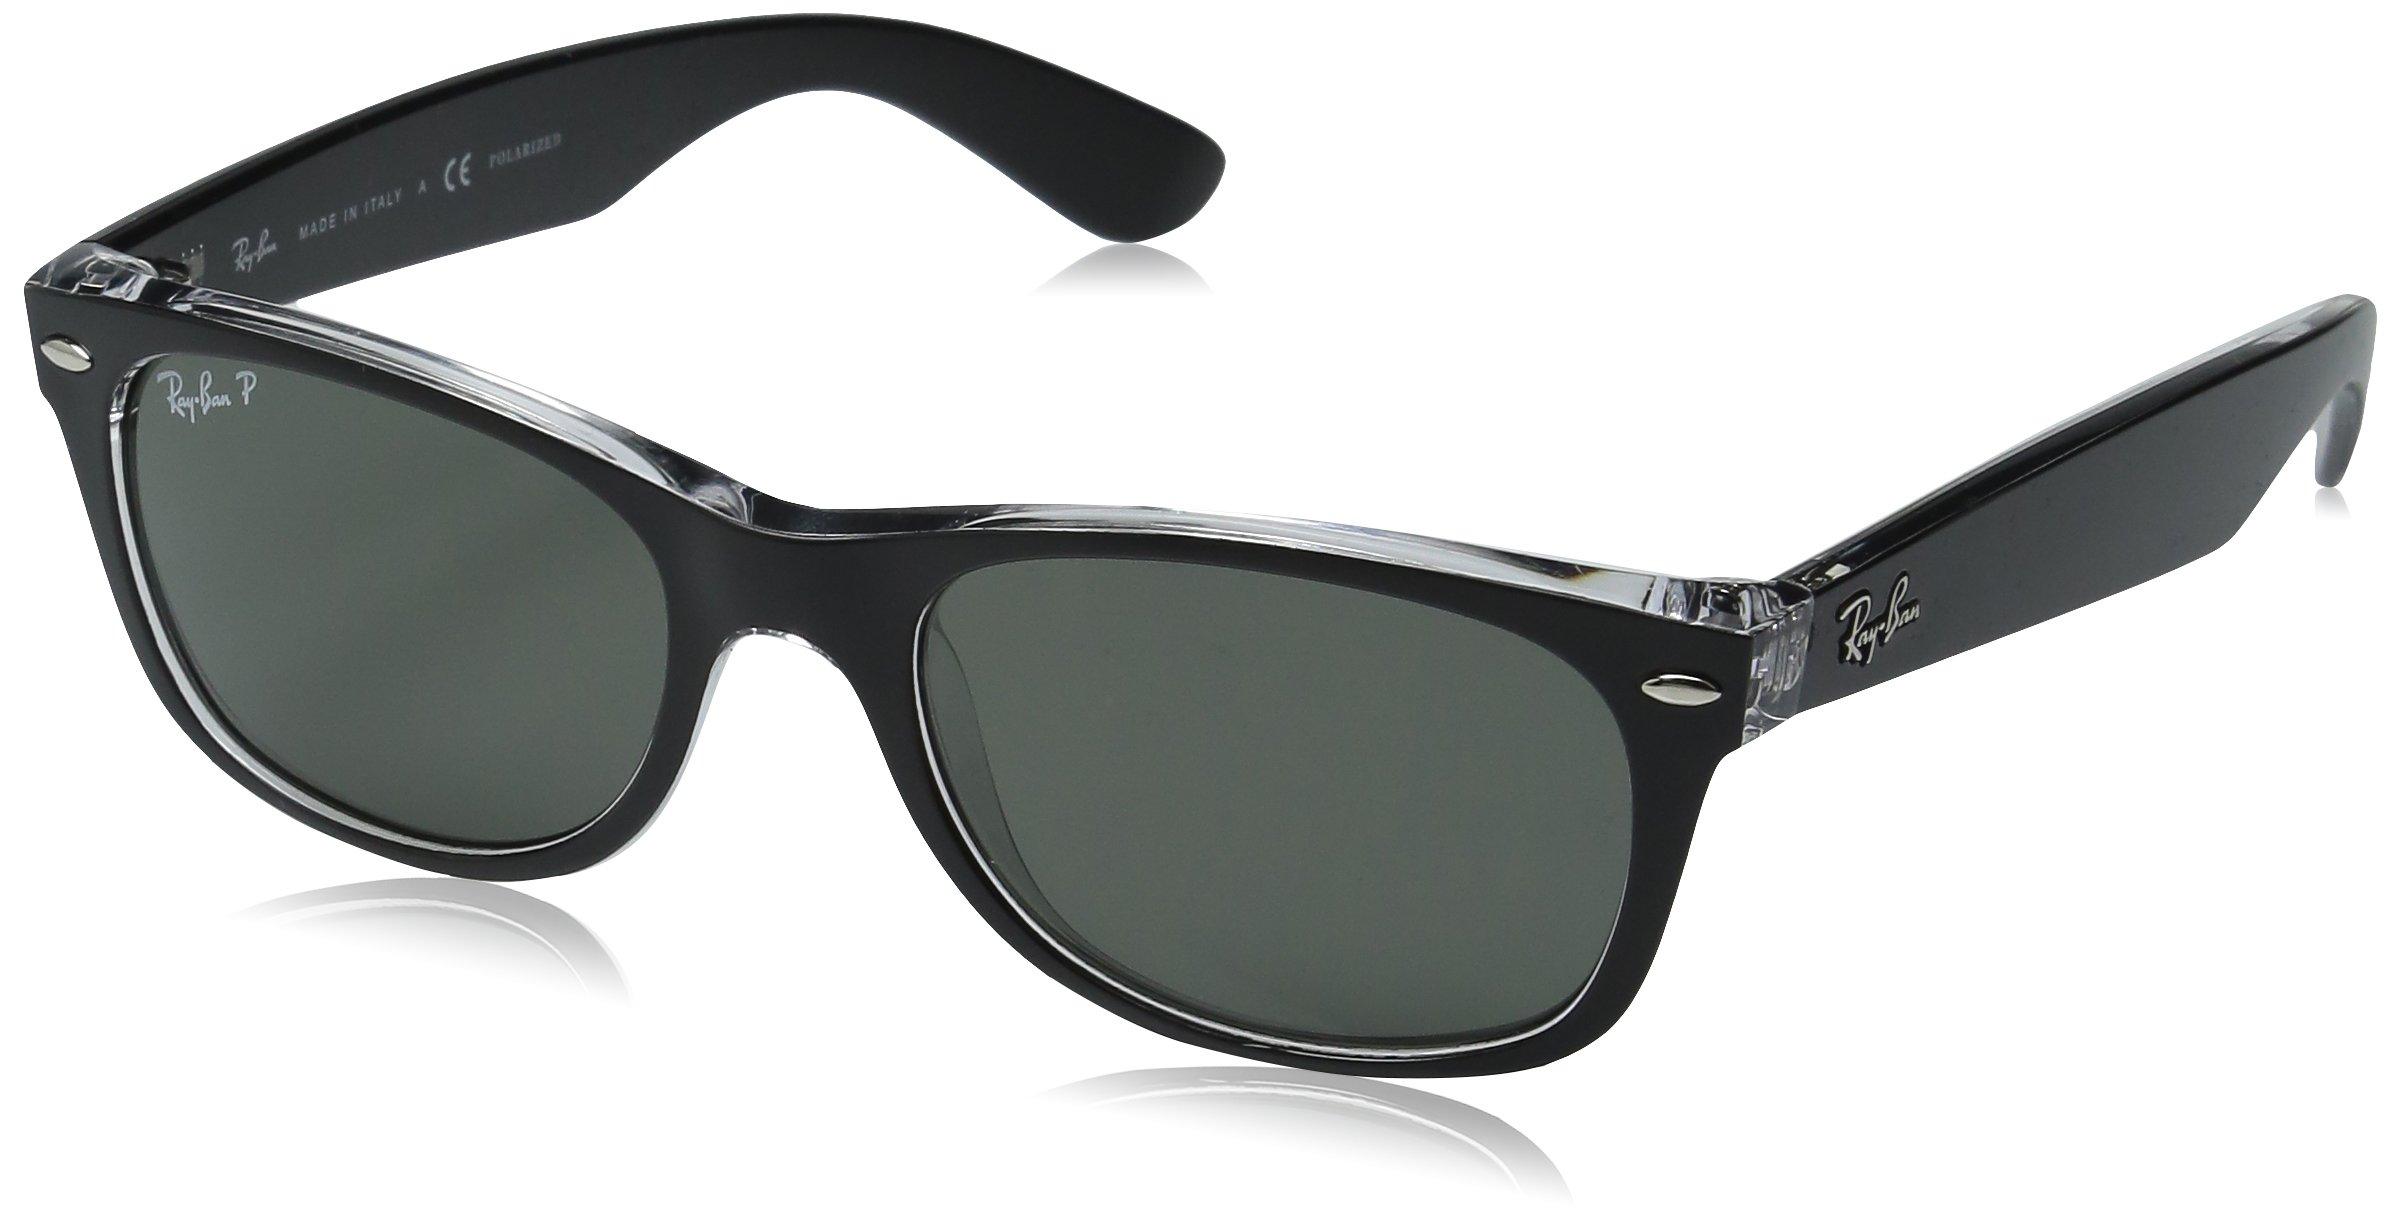 RAY-BAN RB2132 New Wayfarer Sunglasses, Black On Transparent/Green, 58 mm by RAY-BAN